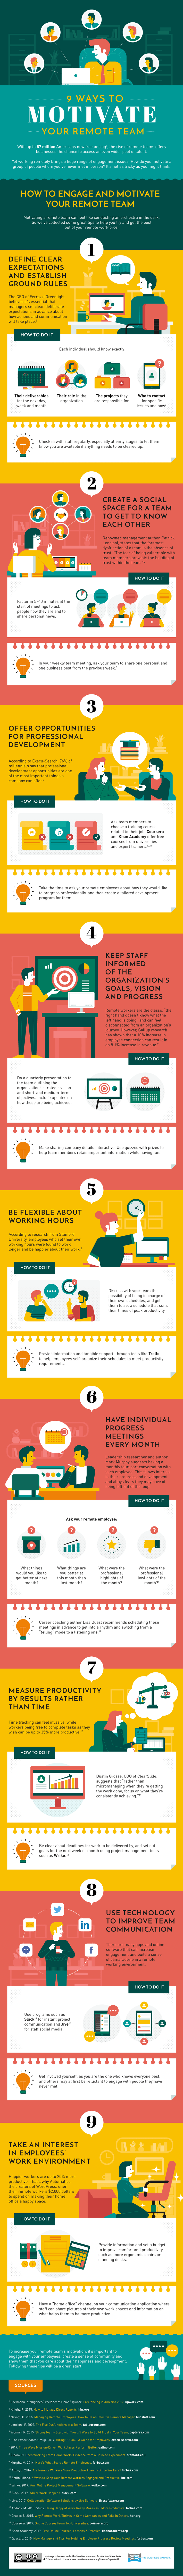 motivate remote teams infographic